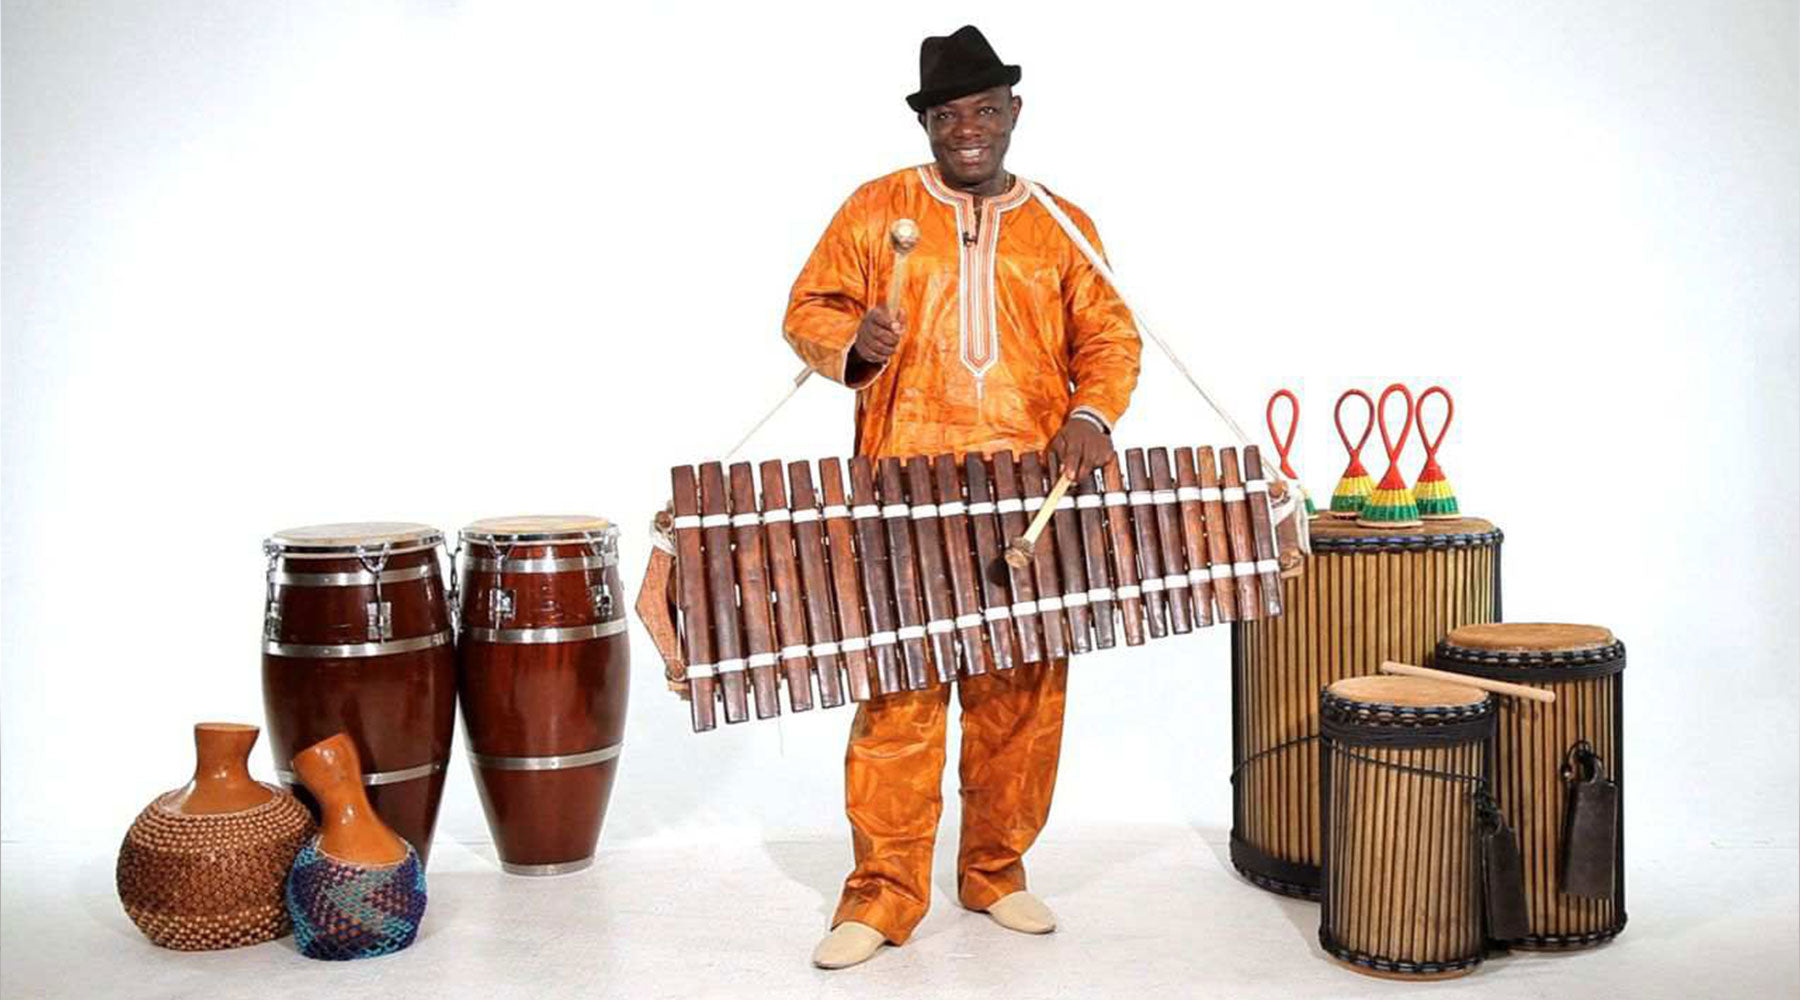 How to play the Balafon: the ancient African xylophone